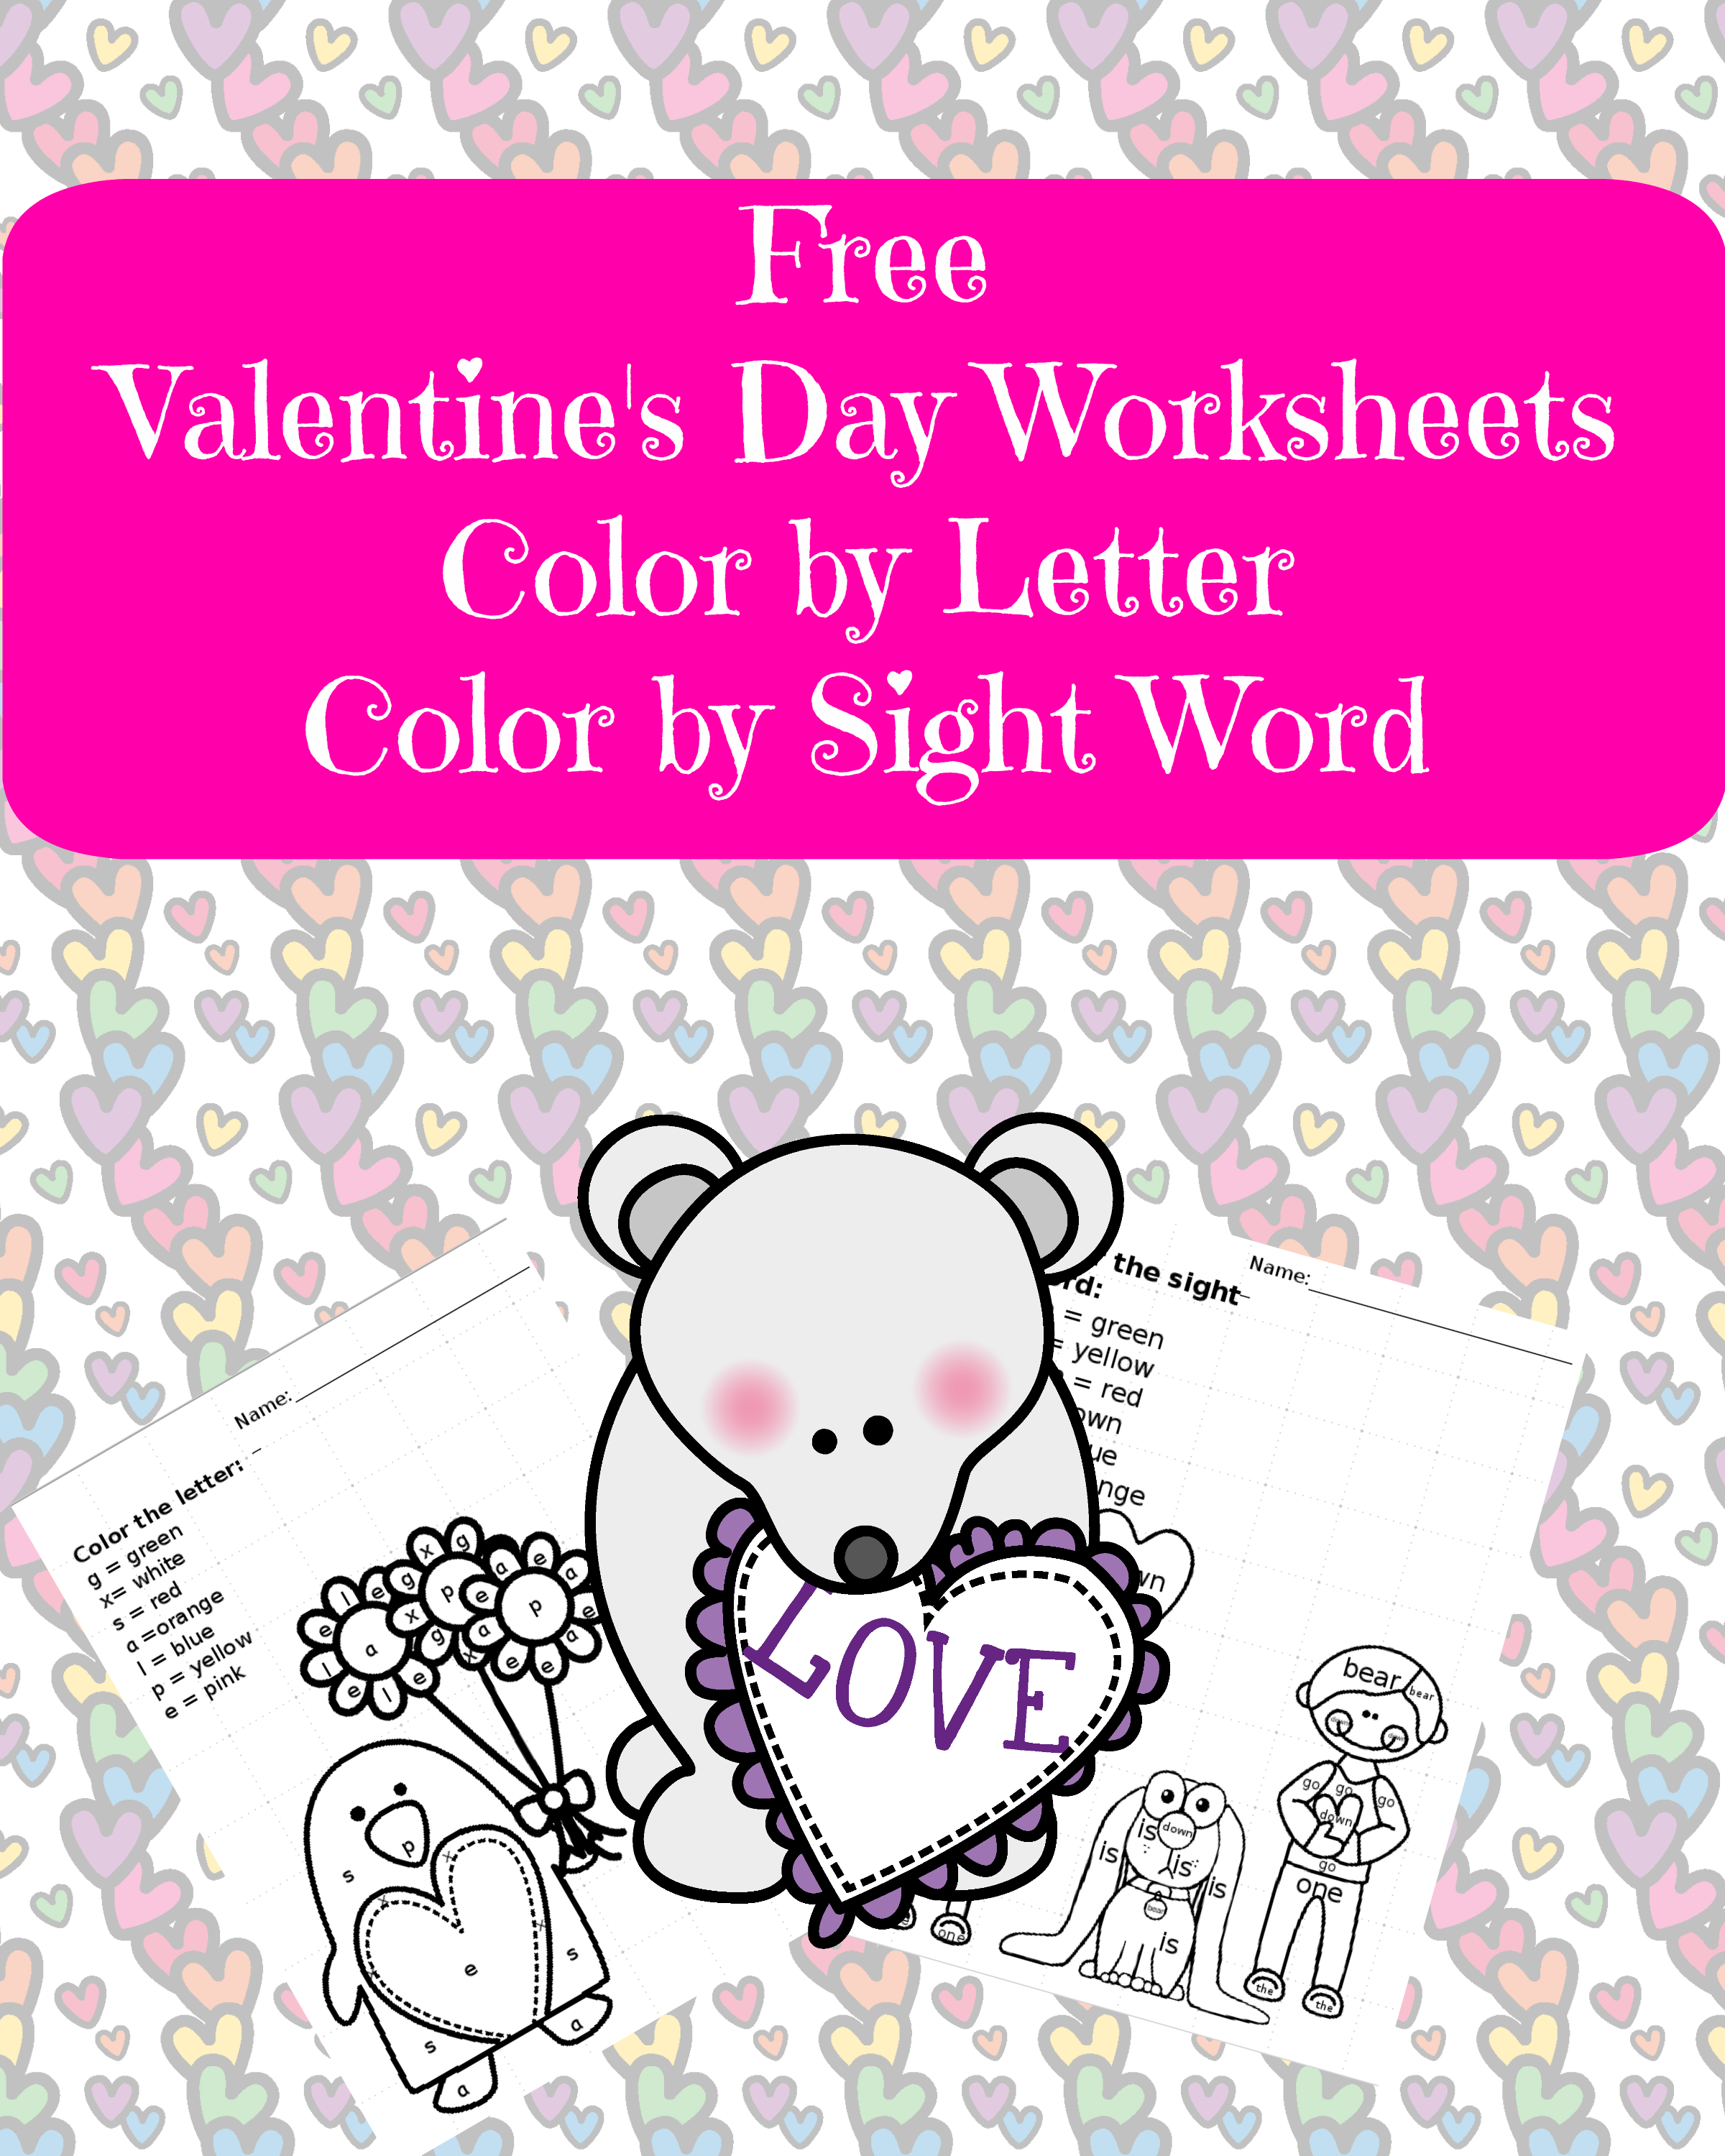 Valentines Day Worksheets Color By Letter Sight Word Classroom Freebies Valentines School Valentines Printables Free [ 3000 x 2400 Pixel ]